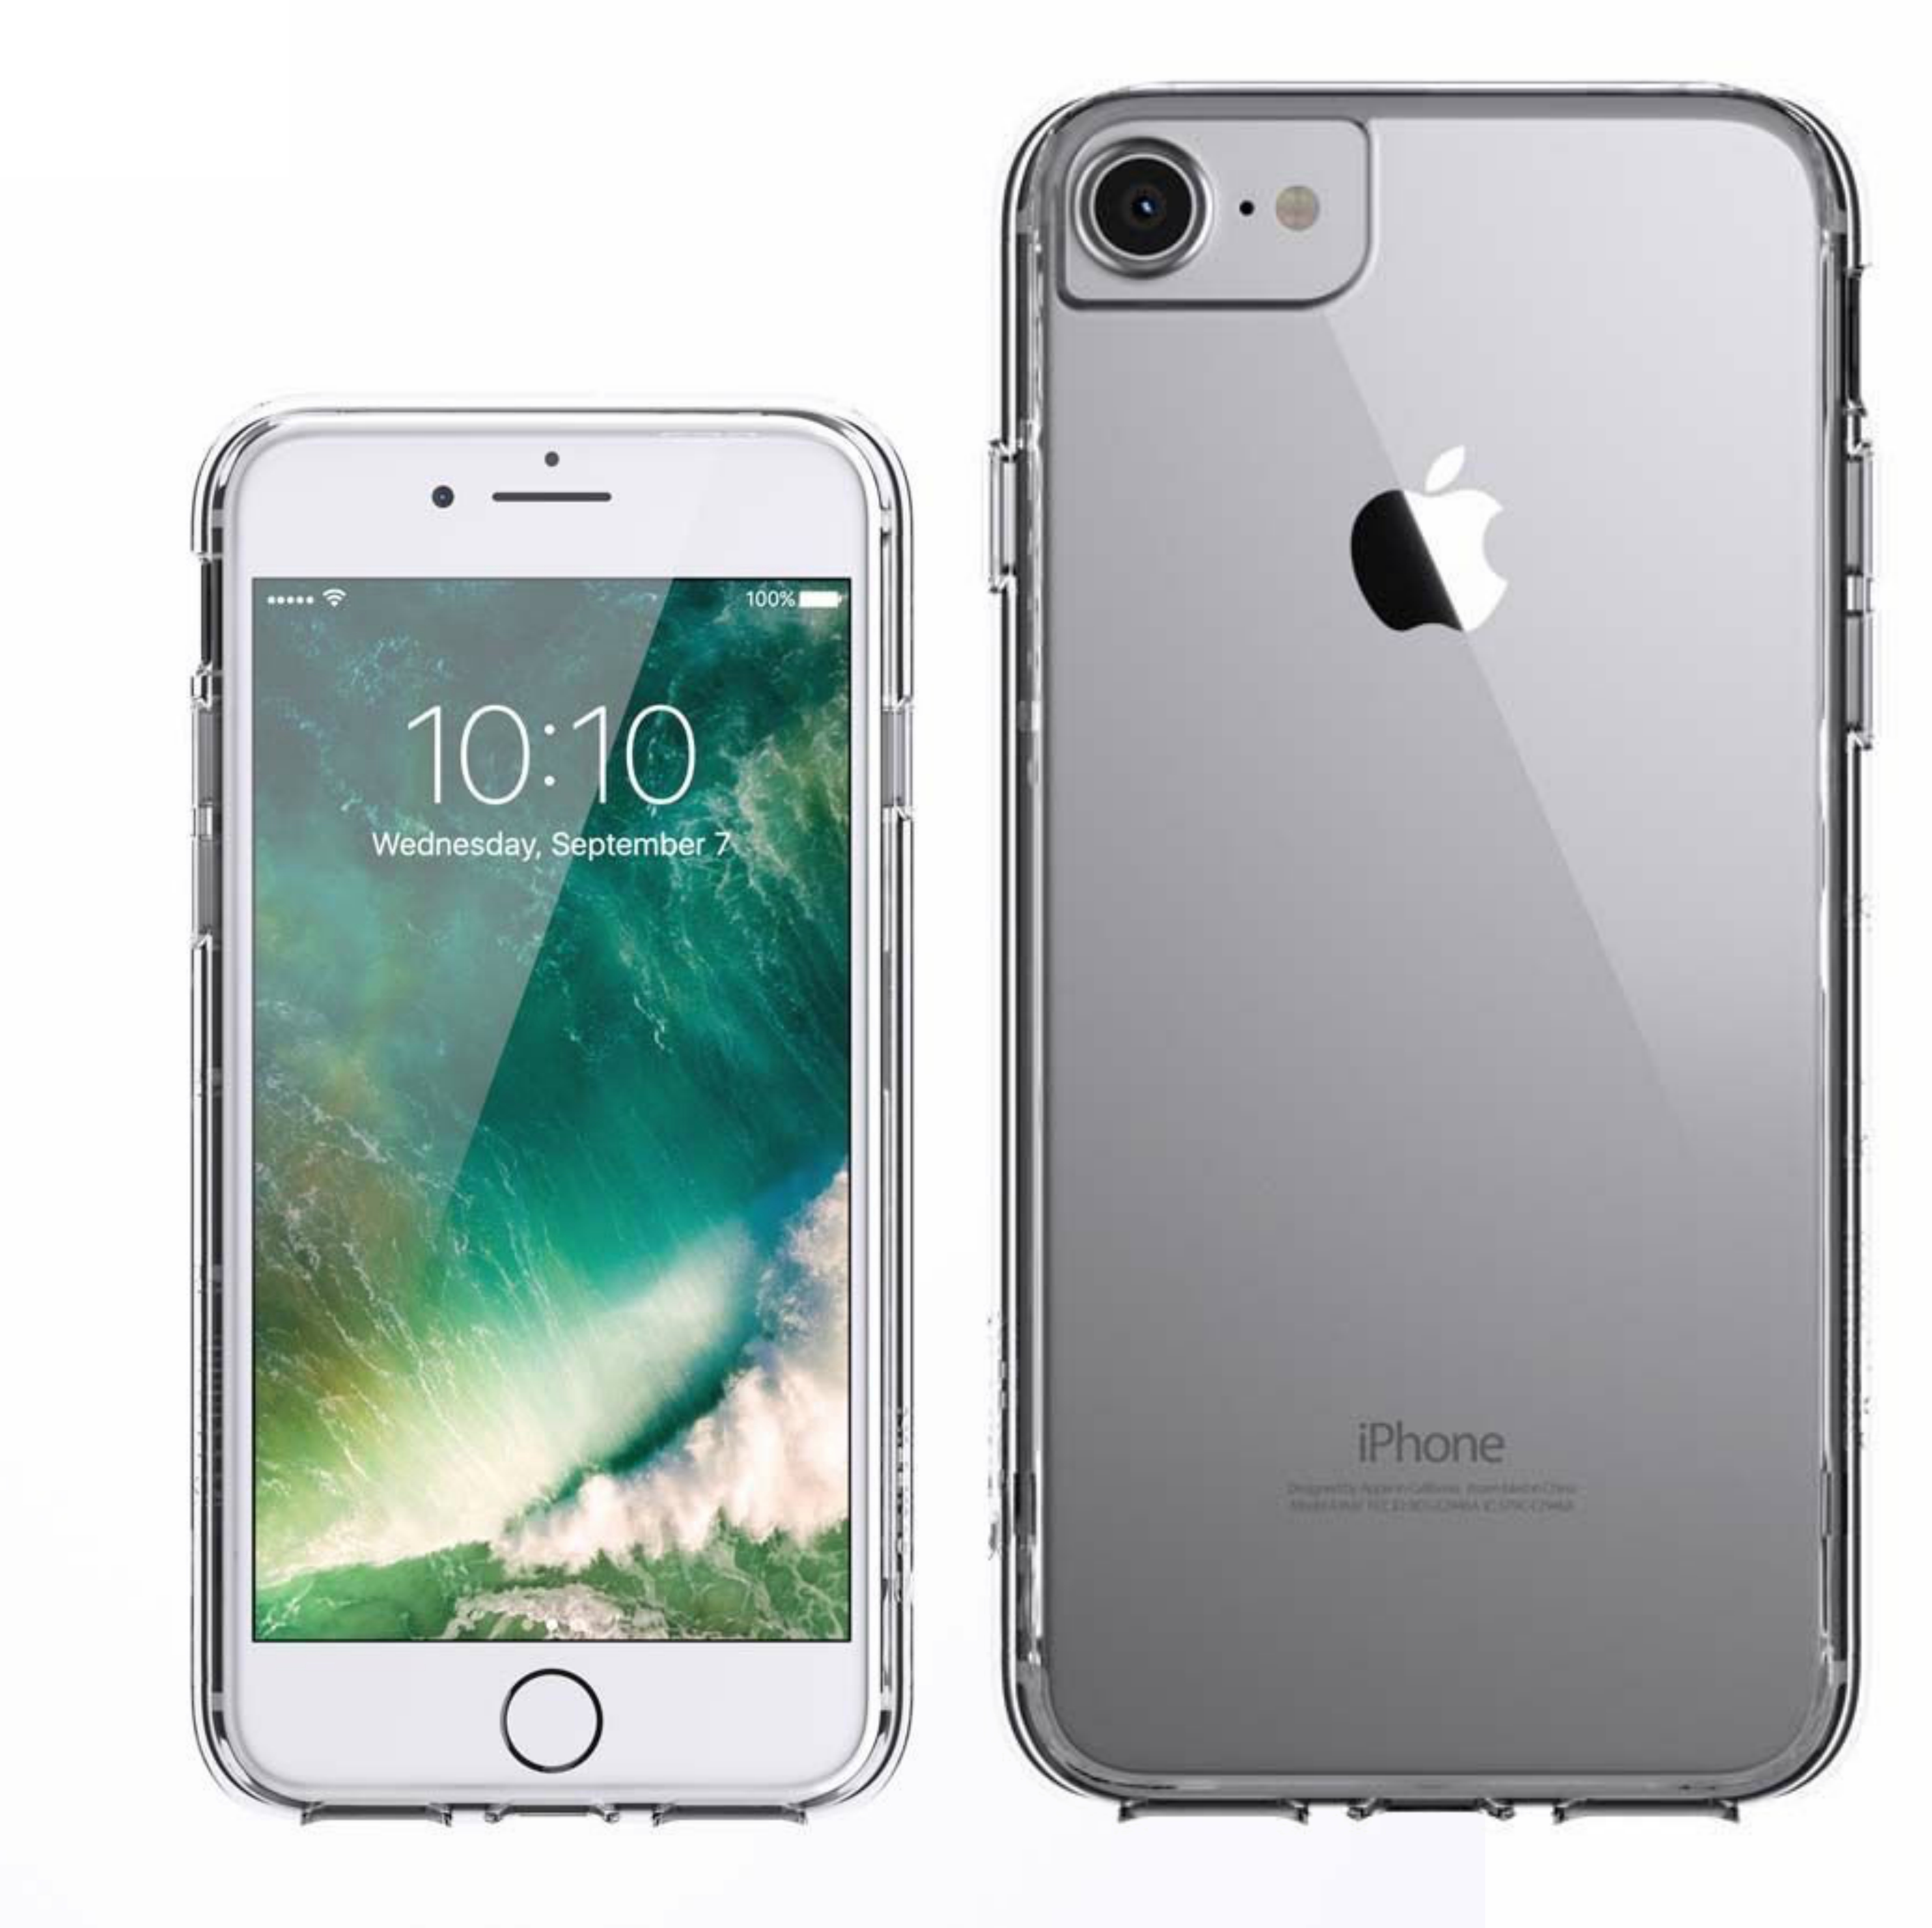 Griffin GB42923 Reveal Ultra-Thin Protective Back Cover|iPhone 7, 6, 6S|Clear|